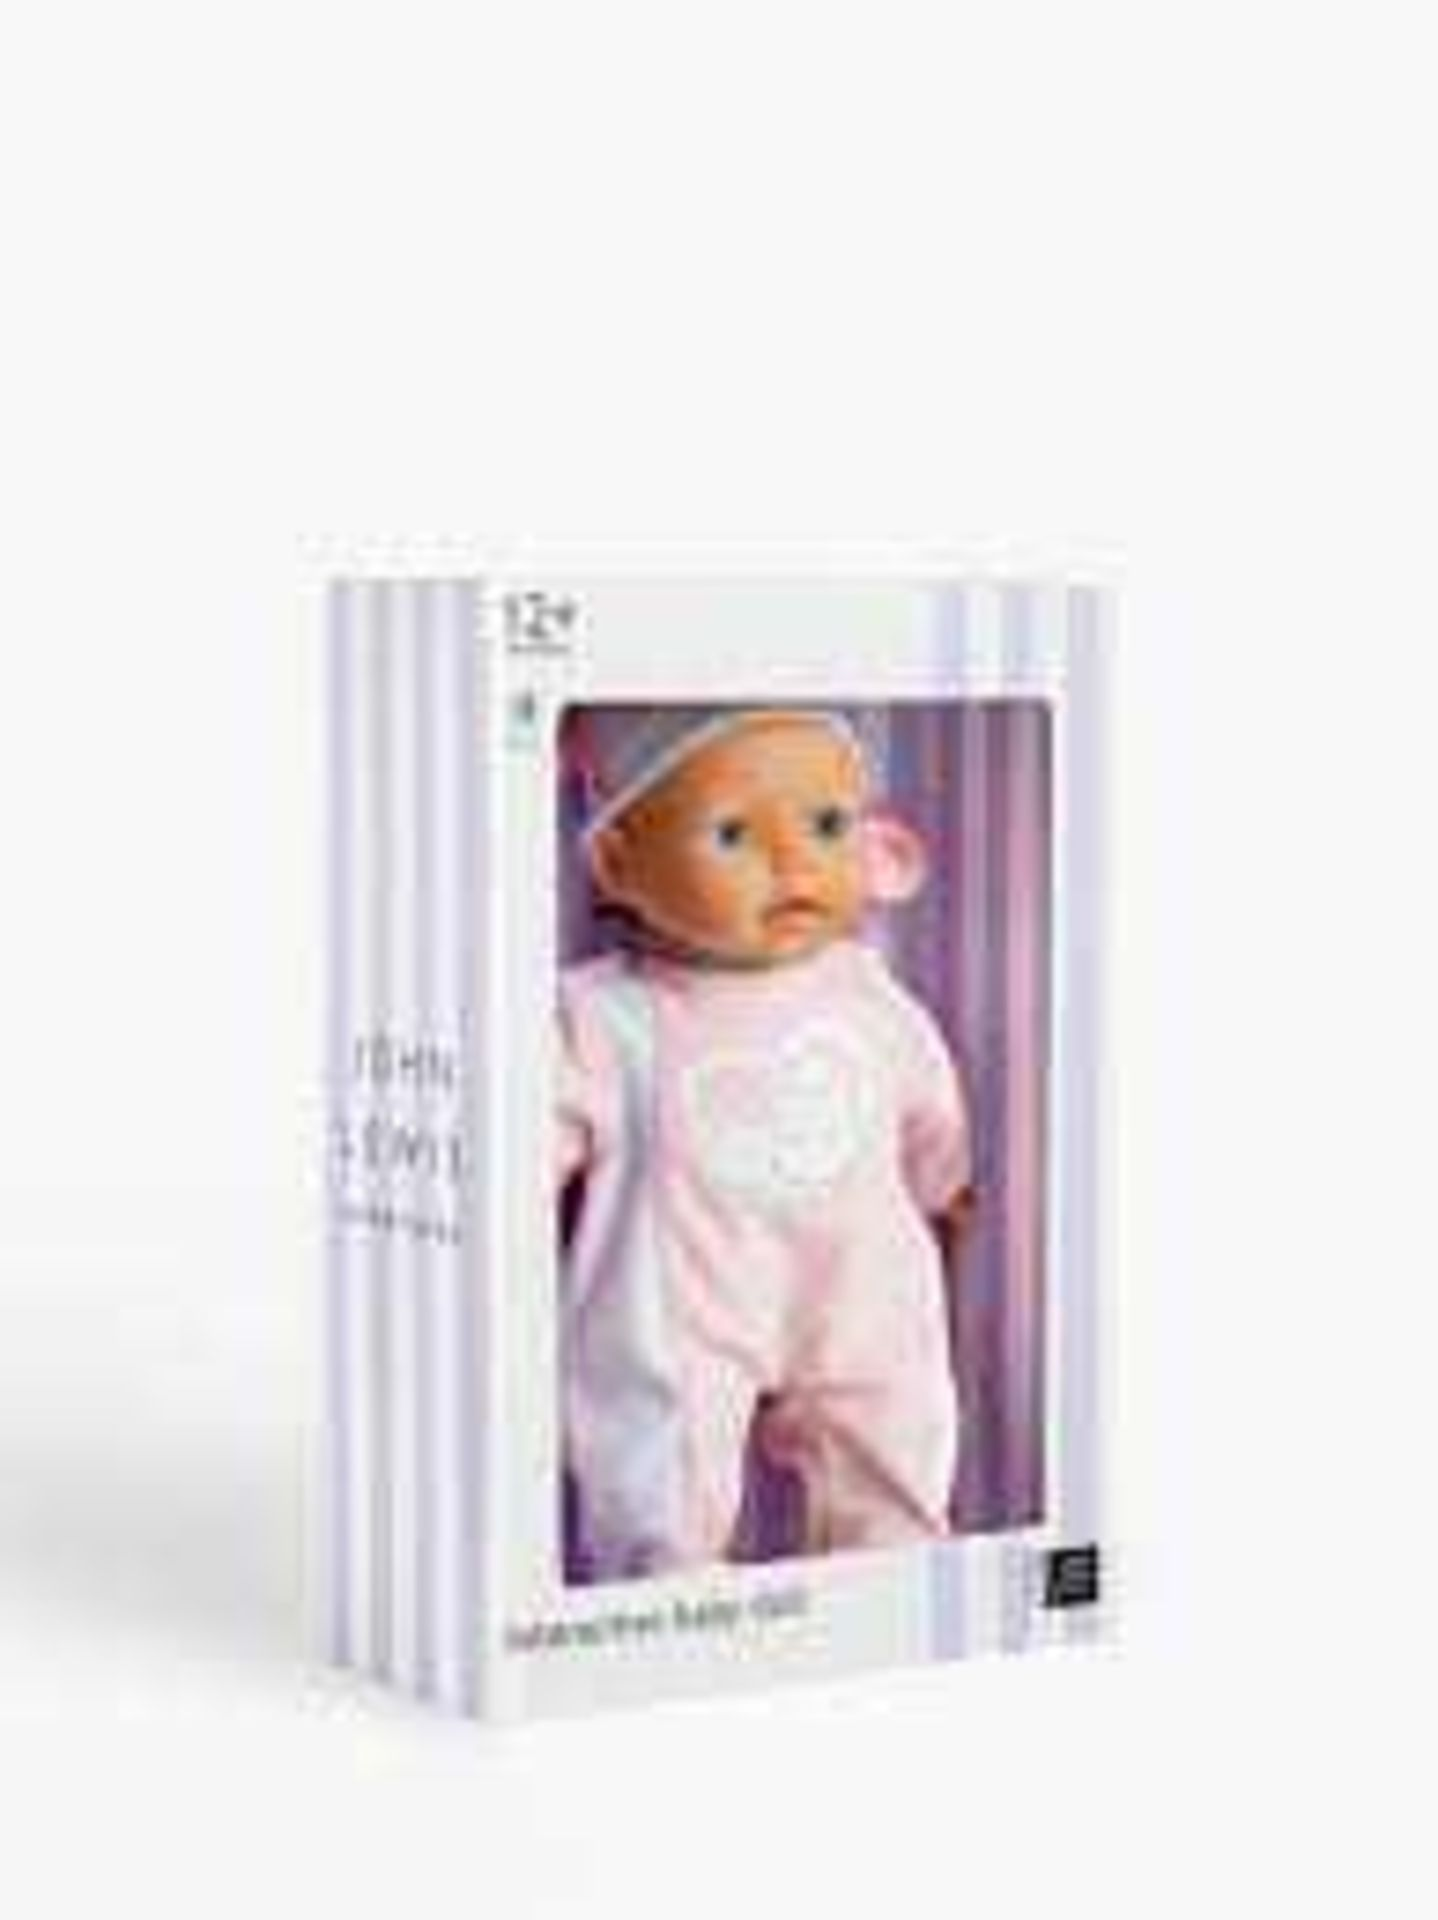 RRP £30 Each Assorted Boxed John Lewis Girls Toys To Include Interactive Baby Doll Wooden Rocking Cr - Image 3 of 3